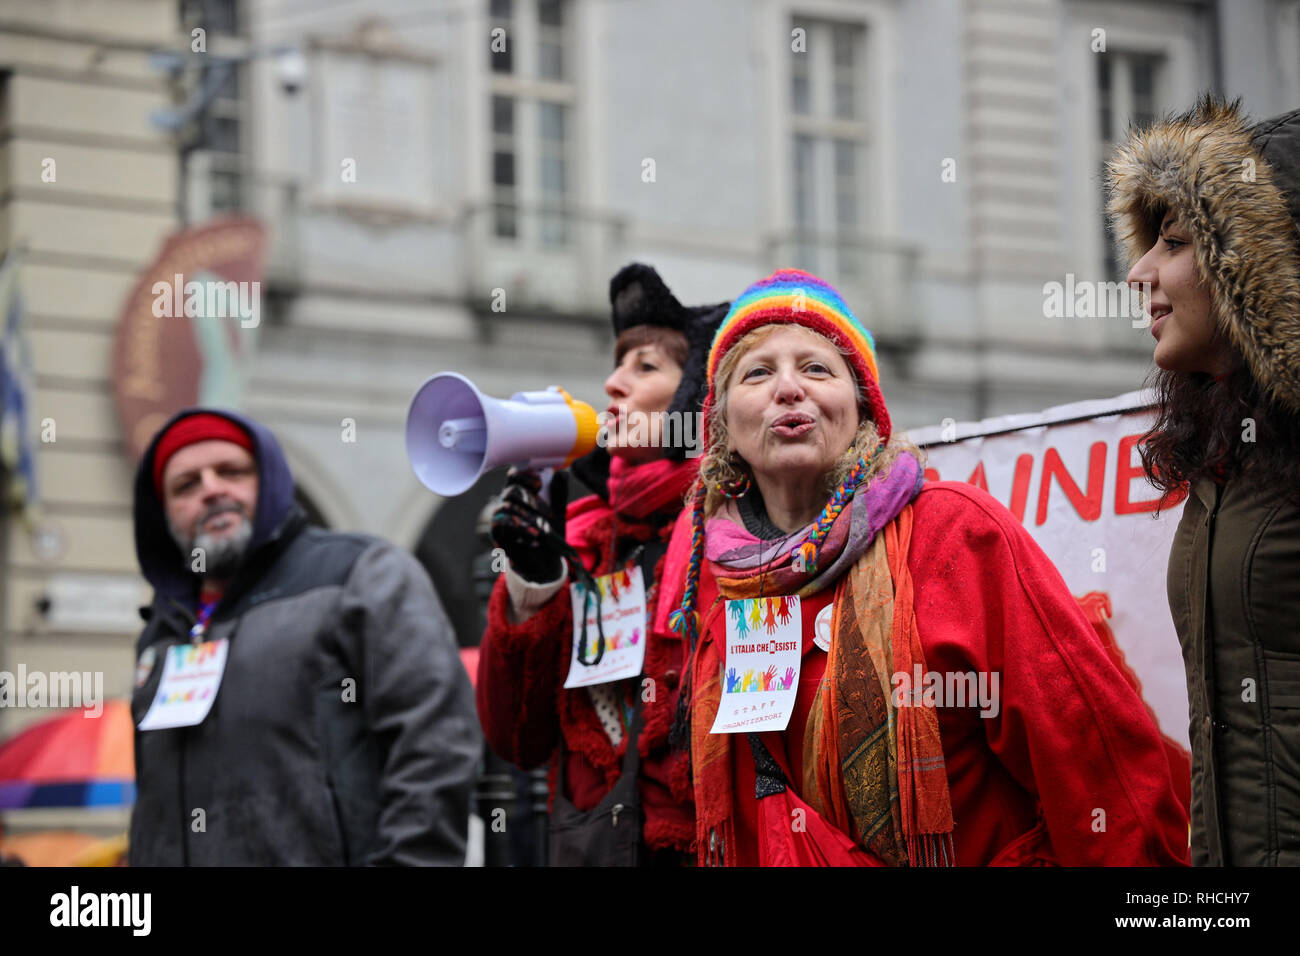 Turin, Italy. 2 February 2019. Promoters of the protest called 'Italy that resists' demonstrate for the hospitality of migrants and against the xenophobic policies of the Italian Government. Credit: MLBARIONA/Alamy Live News - Stock Image